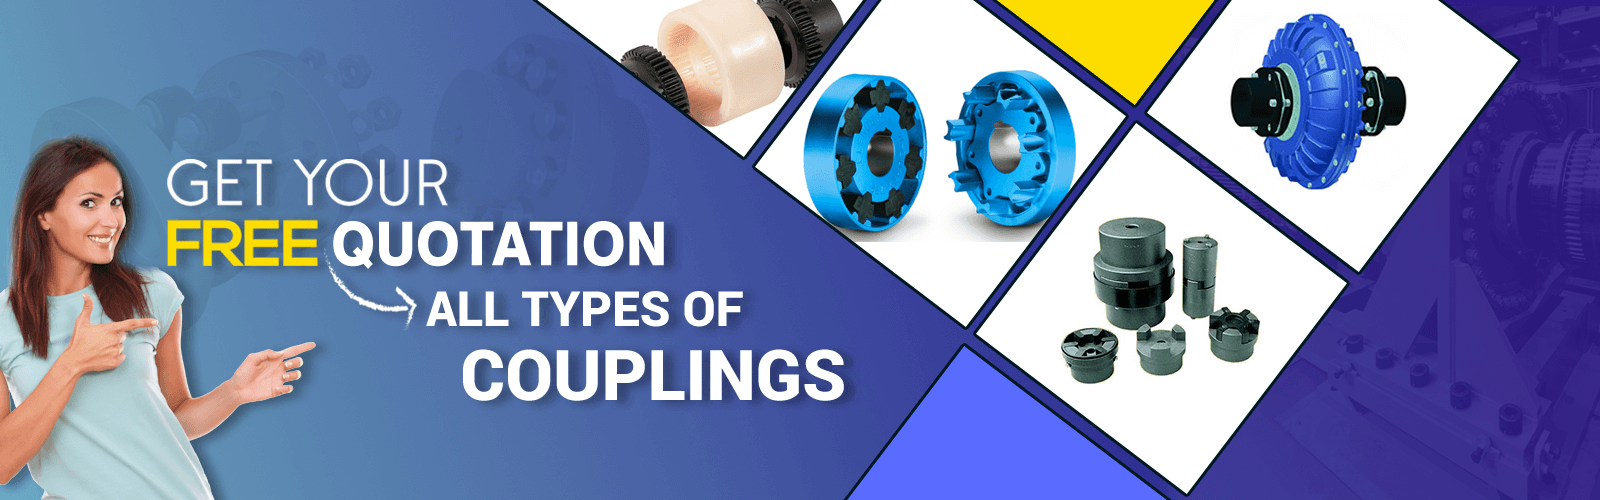 Coupling suppliers in uae, south africa, dubai, pune, bangalore, chennai, qatar, oman, malaysia, gauteng, india, philippines, mumbai, ahmedabad